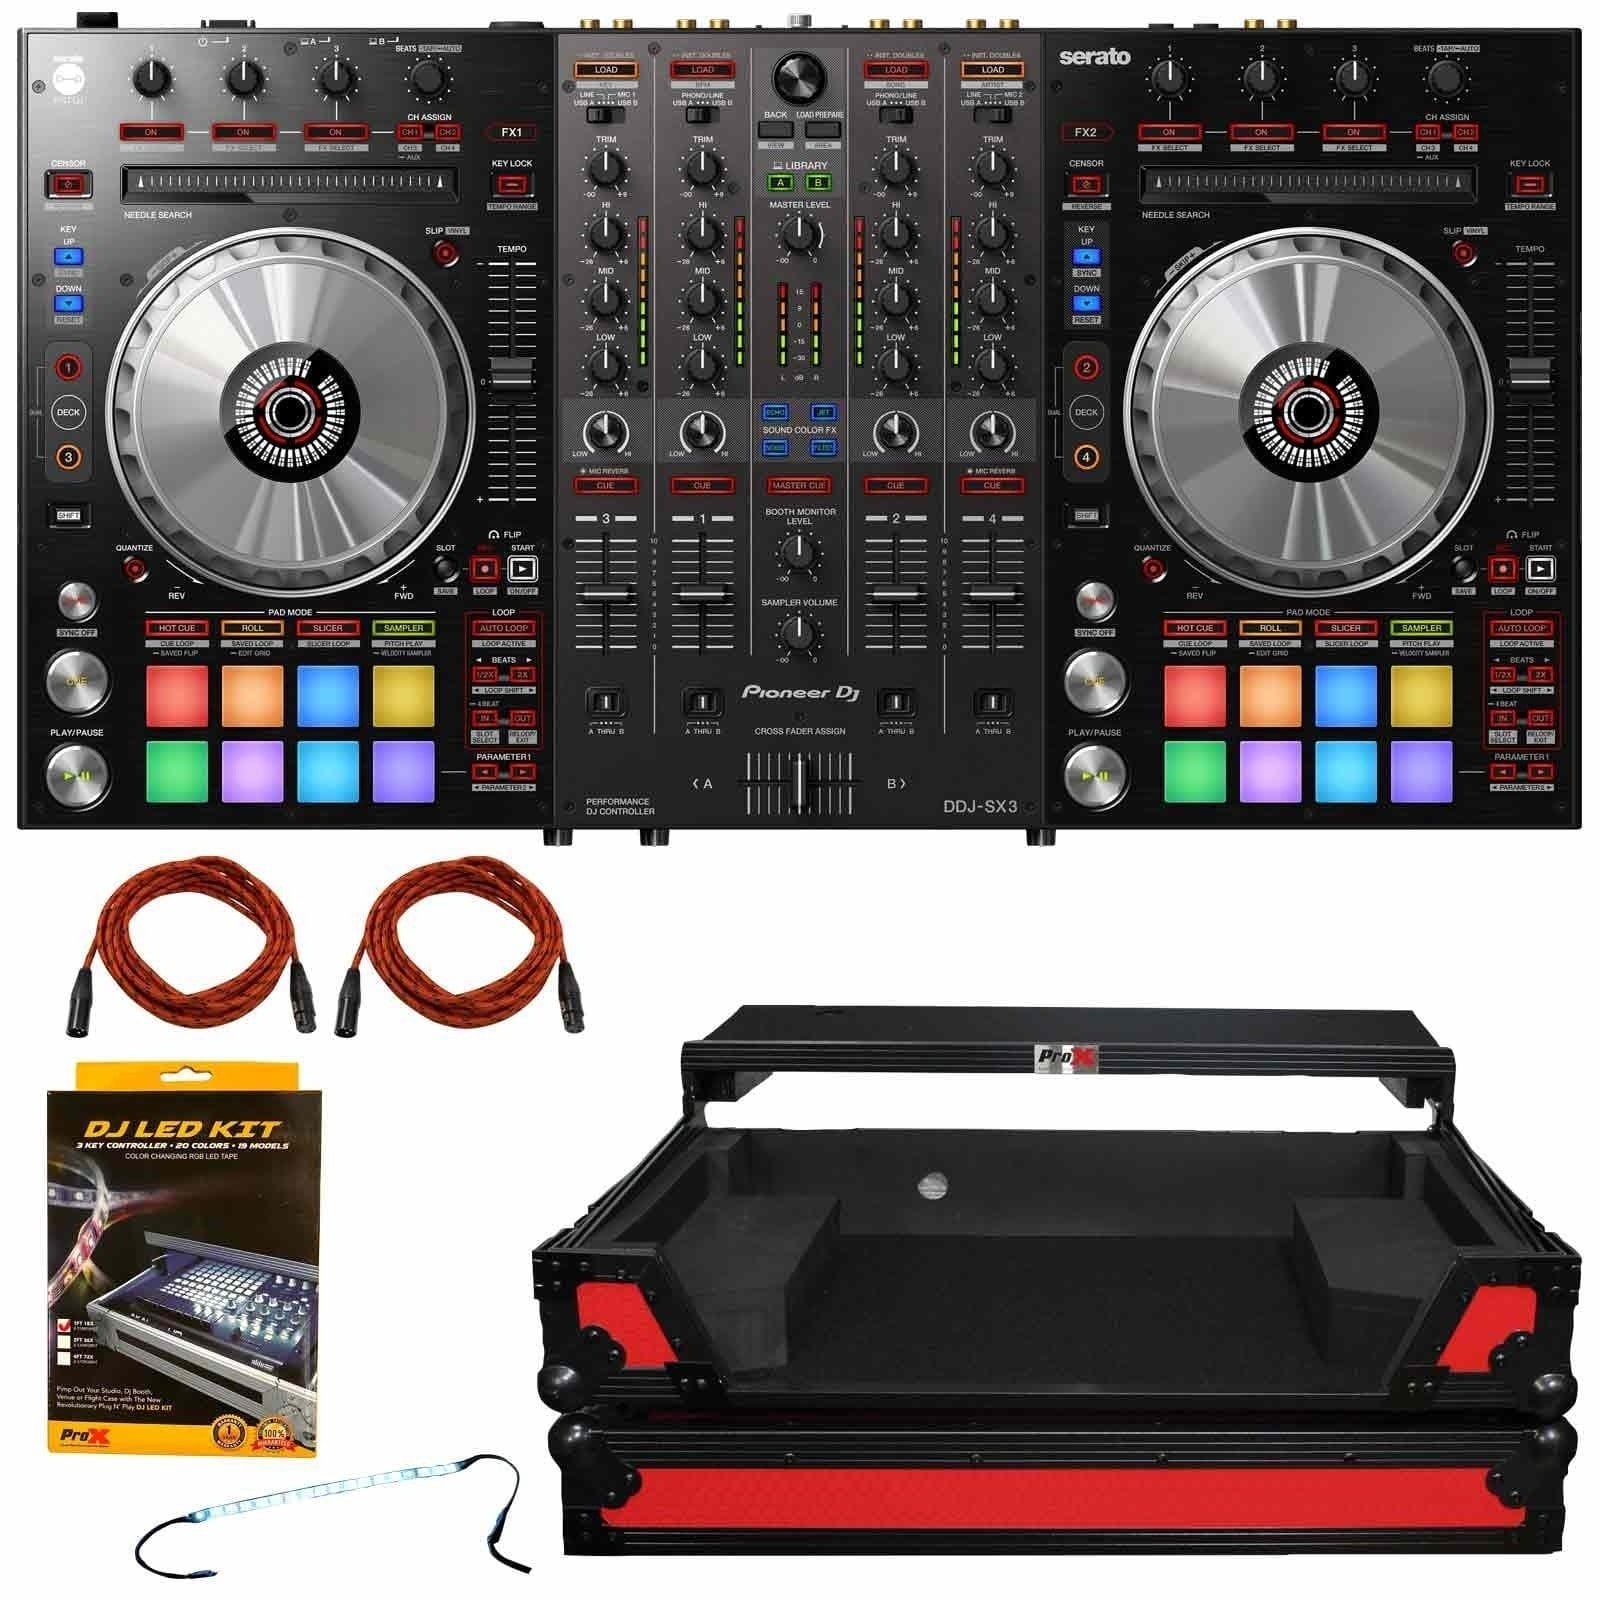 pioneer-dj-ddj-sx3-4-channel-serato-dj-pro-controller-with-red-on-black-controller-flight-case-package-10a